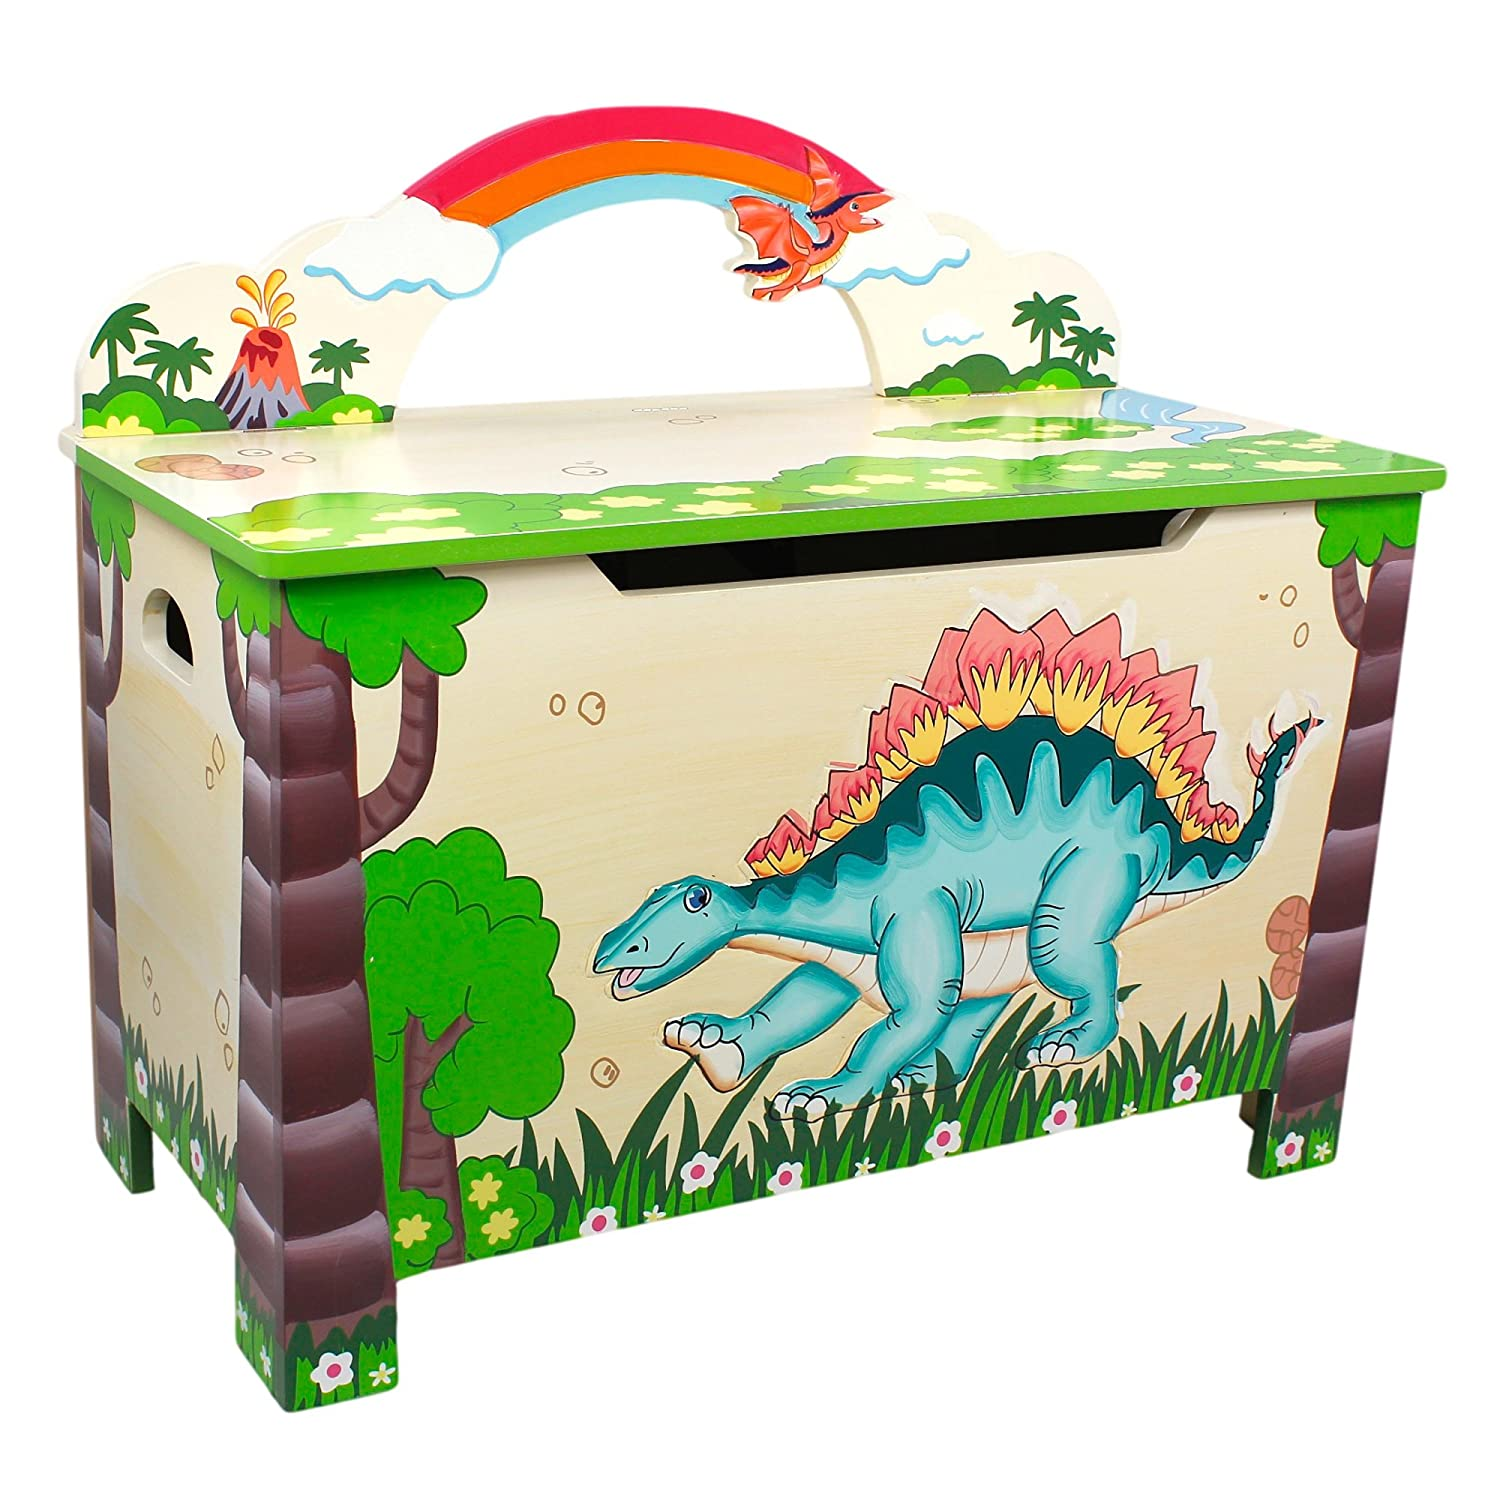 Kids wooden toy chest sunny safari - Fantasy Fields By Teamson Dinosaur Kingdom Childrens Large Wooden Storage Kids Toy Box Chest Td 0074a Amazon Co Uk Baby